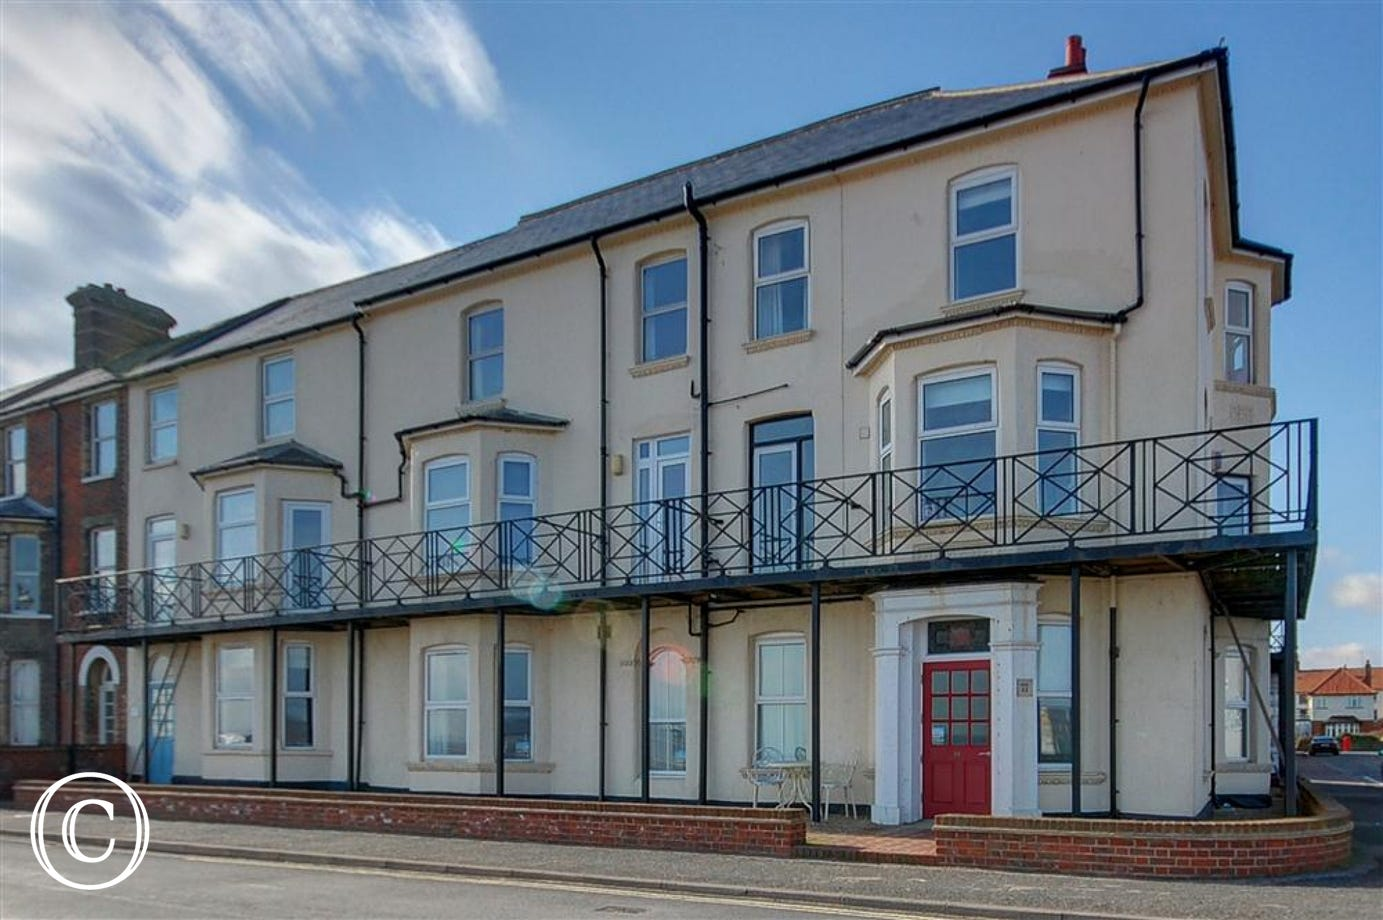 12 The Craighurst is set in one of the most alluring spots in Southwold, just seconds from the beach.